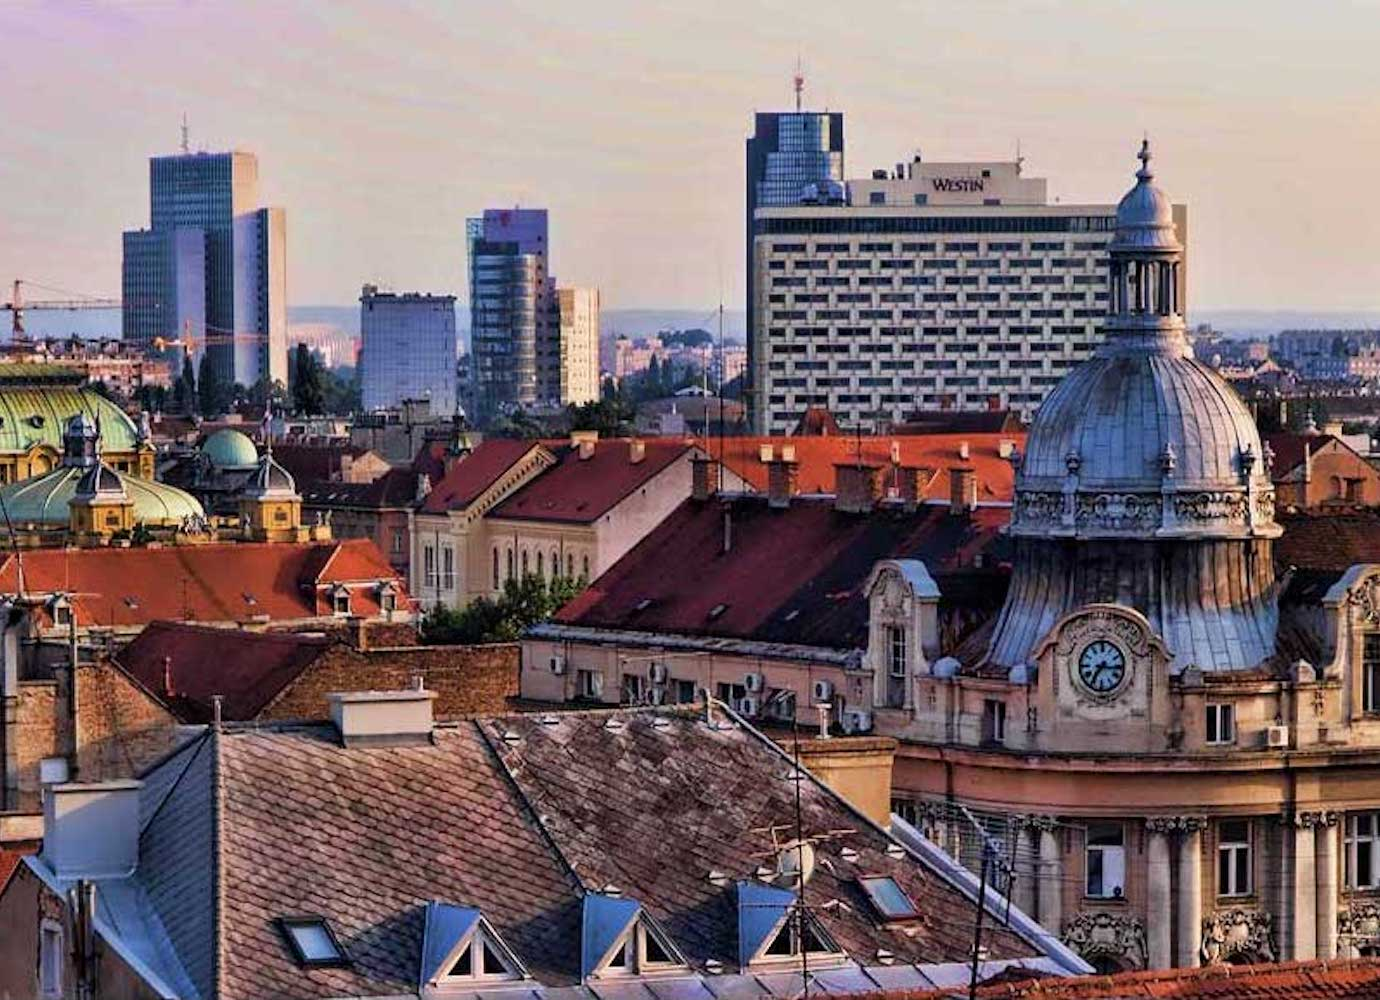 The Mayor of Zagreb wants to build Croatia's own Manhattan — and localsare taking to the streets to stop him